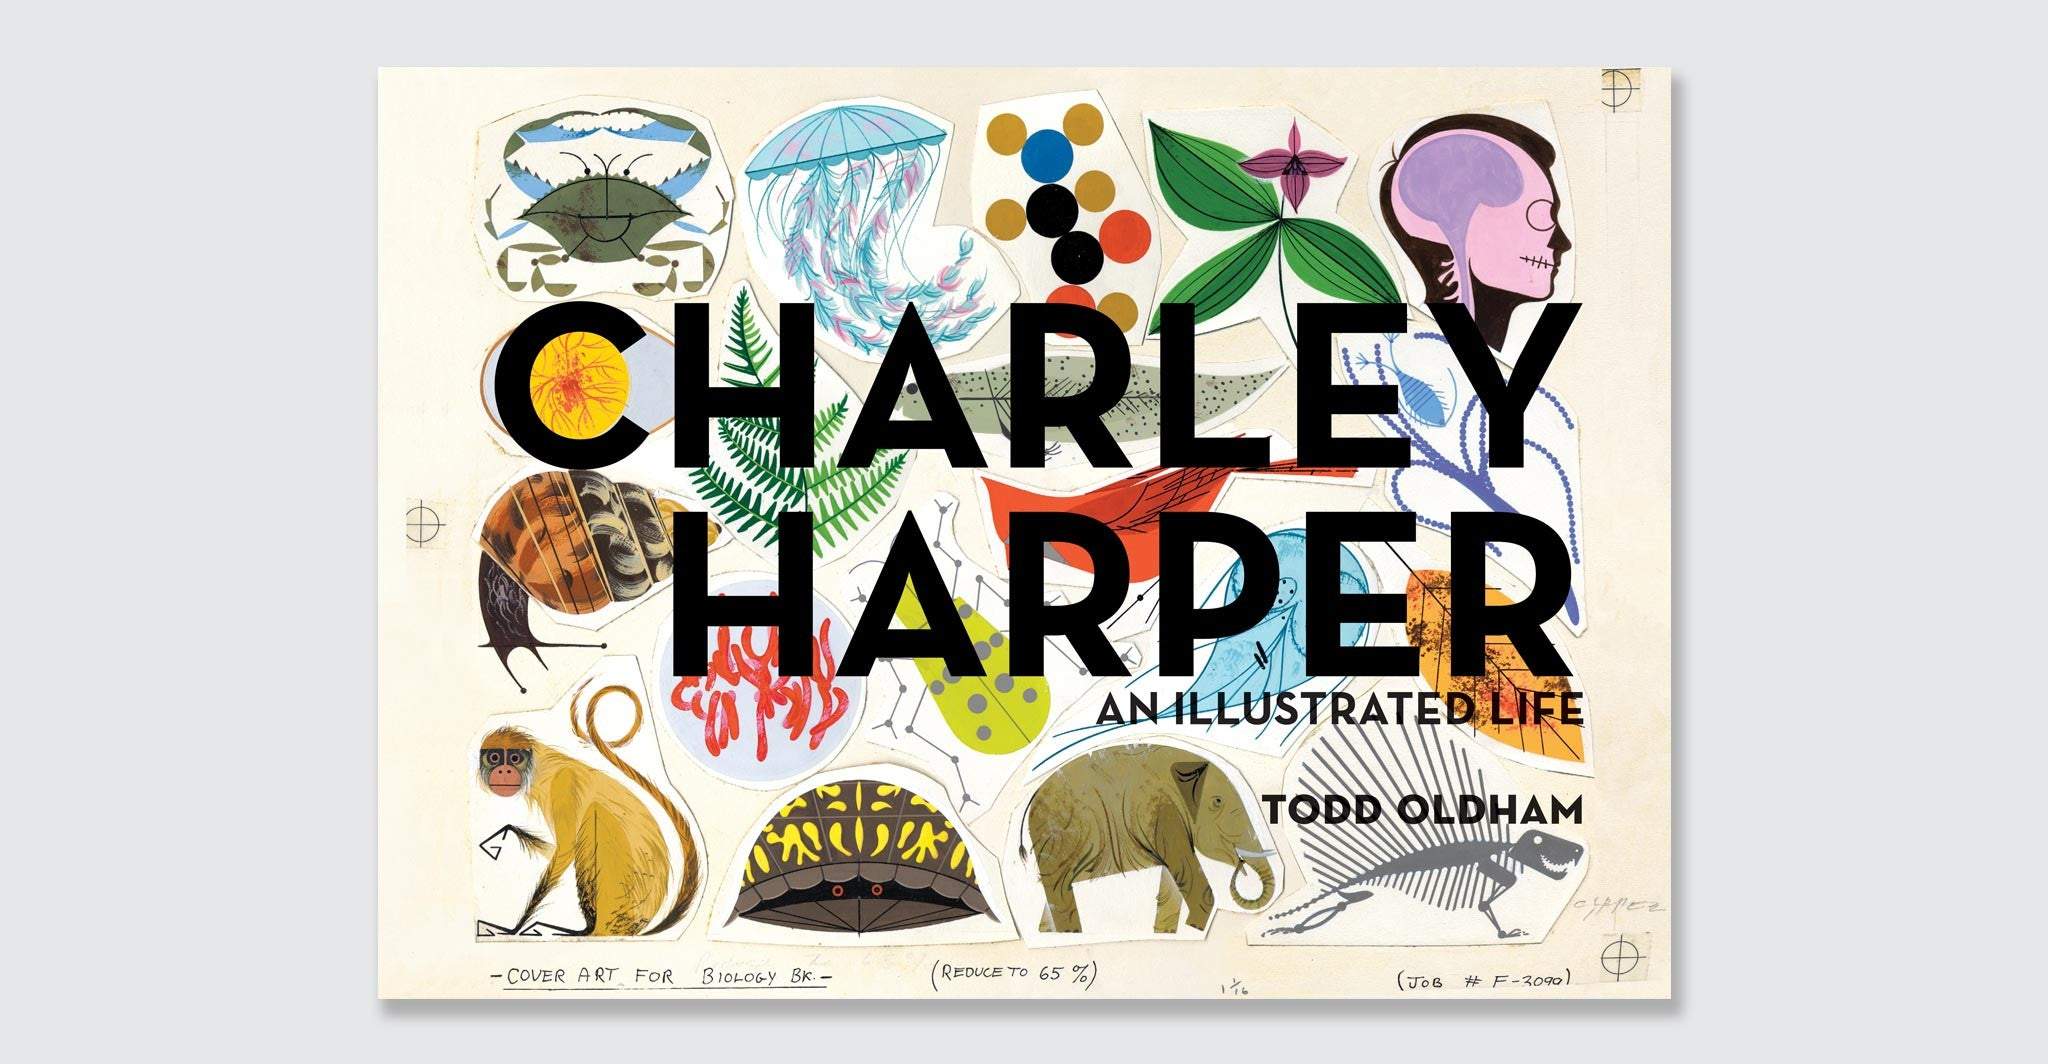 Illustrated Book Cover Version : Charley harper illustrated life jumbo hardcover edition by